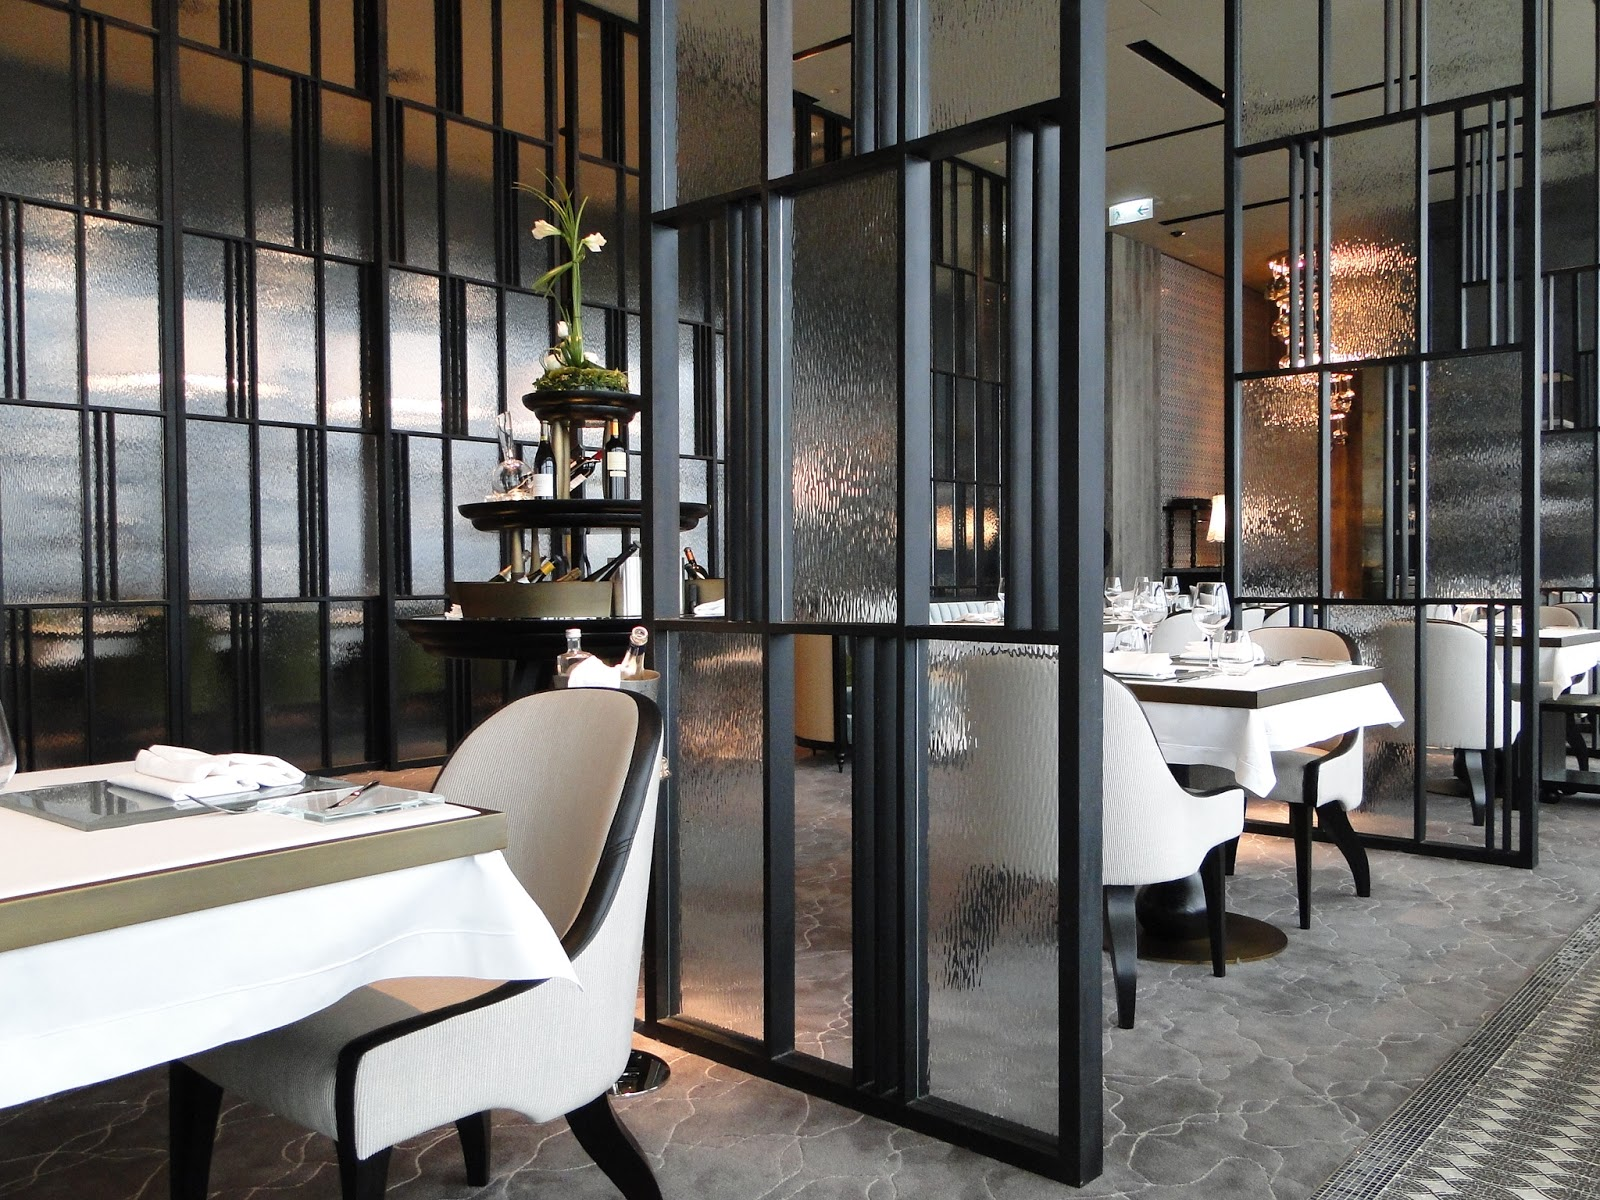 The french window hong kong china a traveling for Restaurant window design